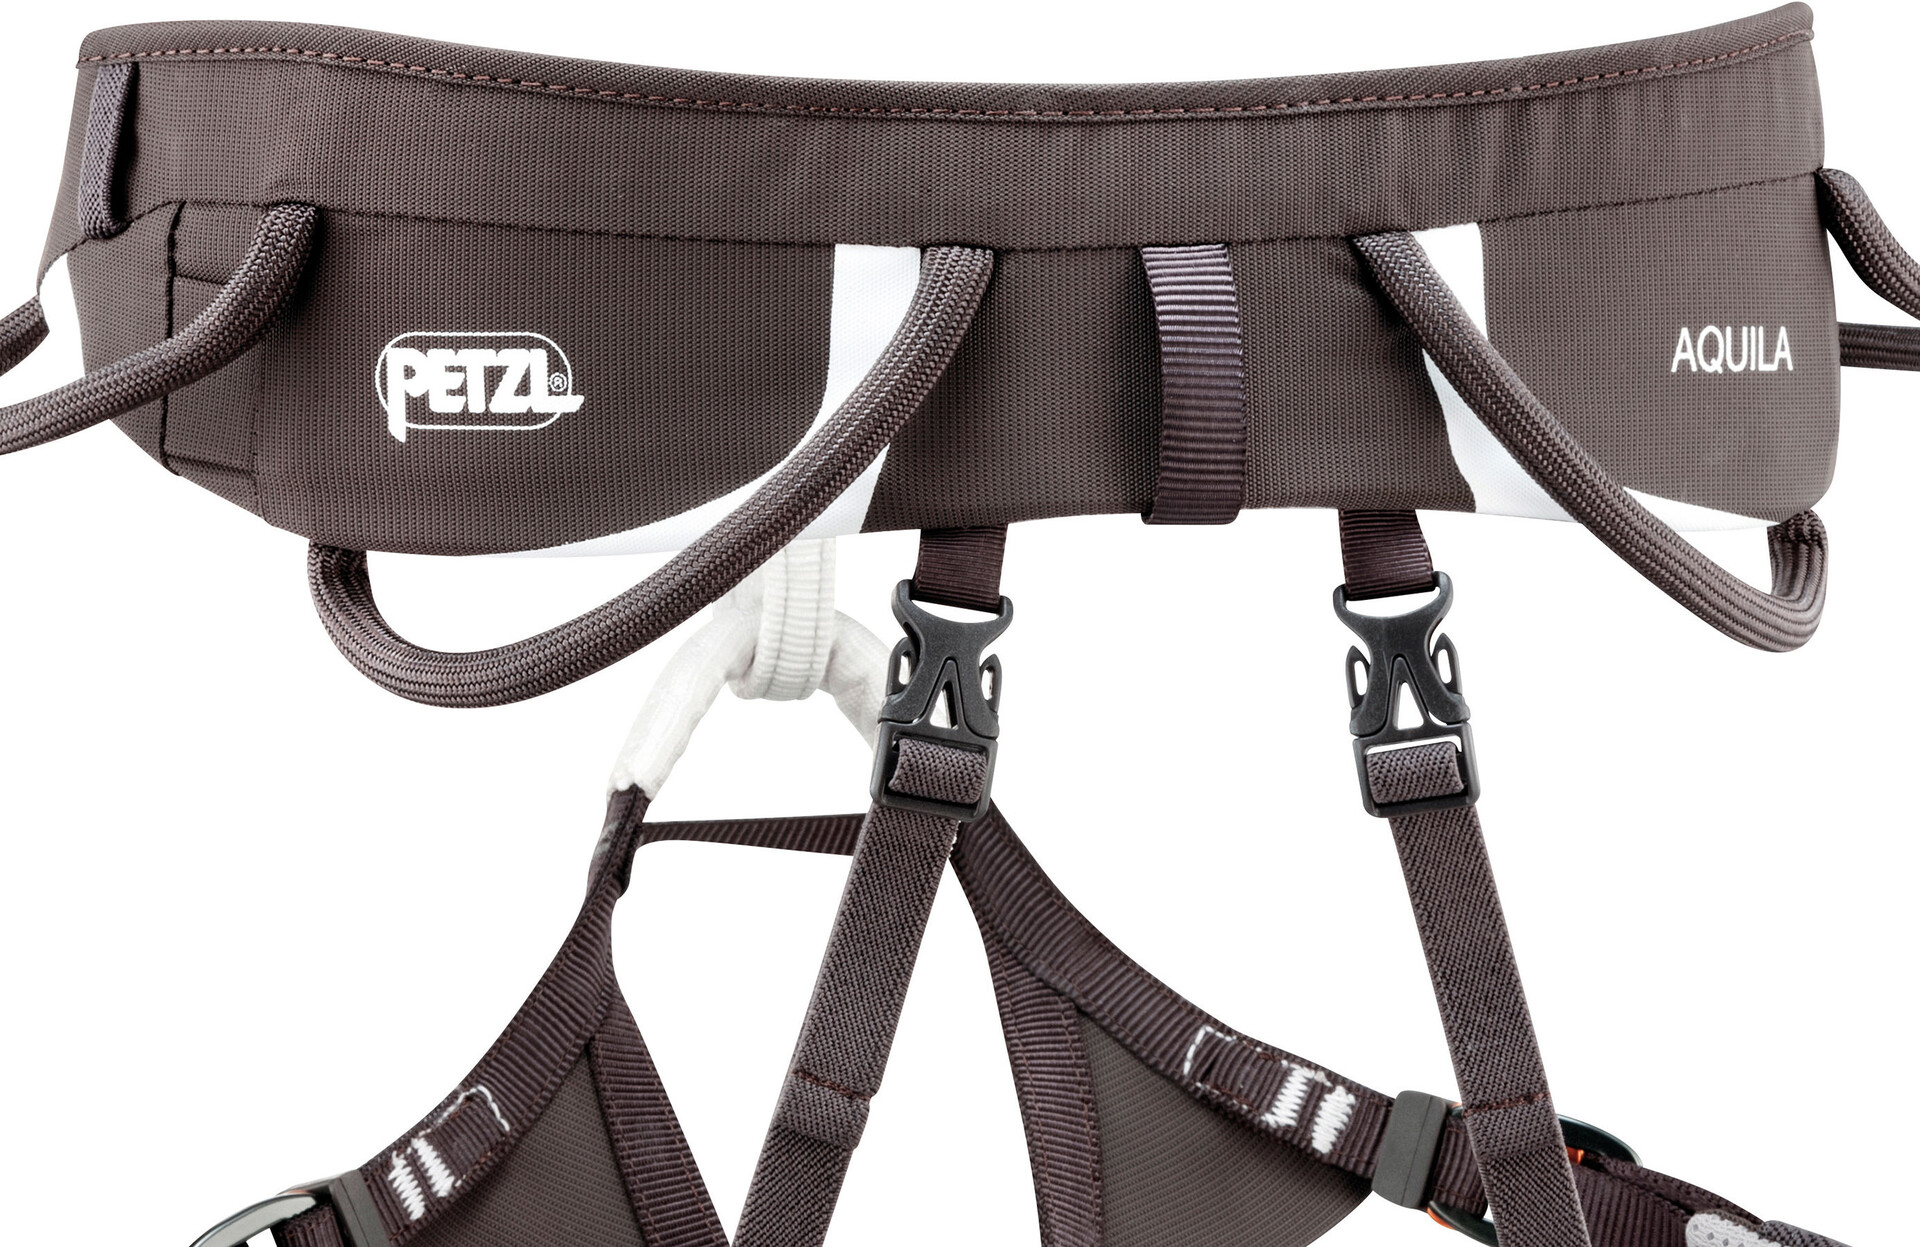 Ultra Light Klettergurt : Petzl aquila klettergurt grau campz at